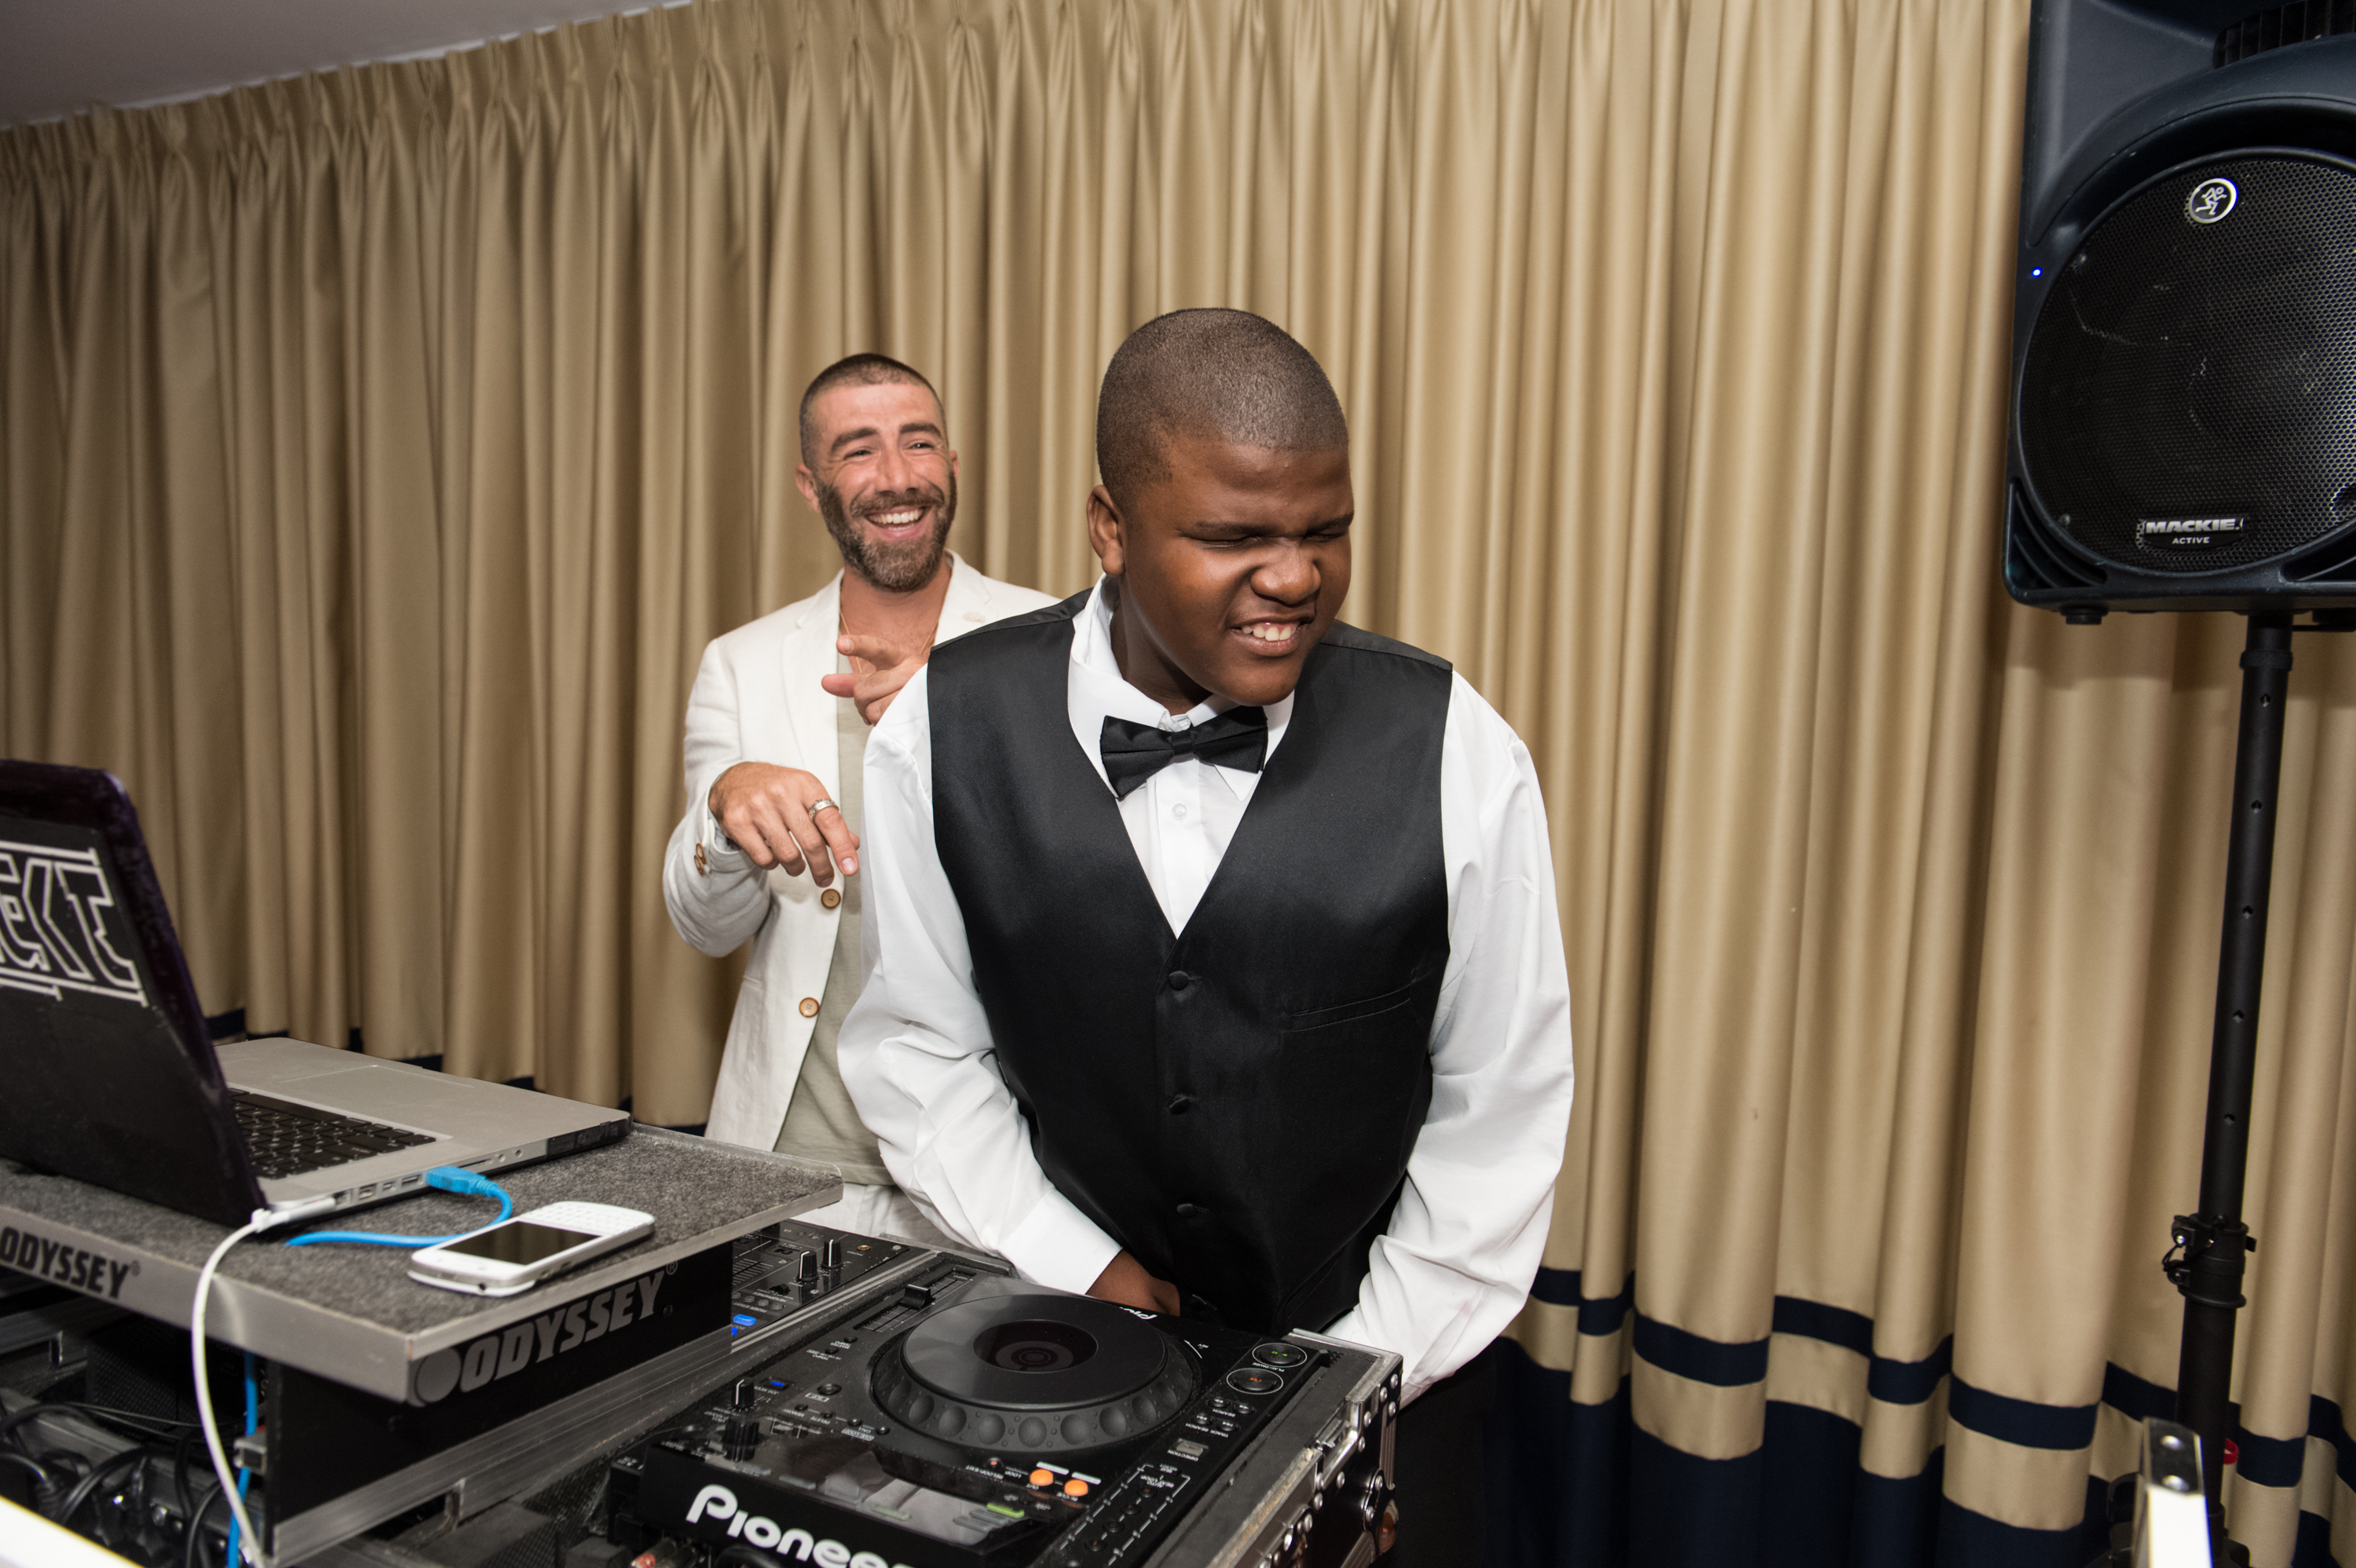 DJ ARKITEK and Nassan Arbubakrr perform at the National Autism Day Dinner at Cipriani in downtown Miami.